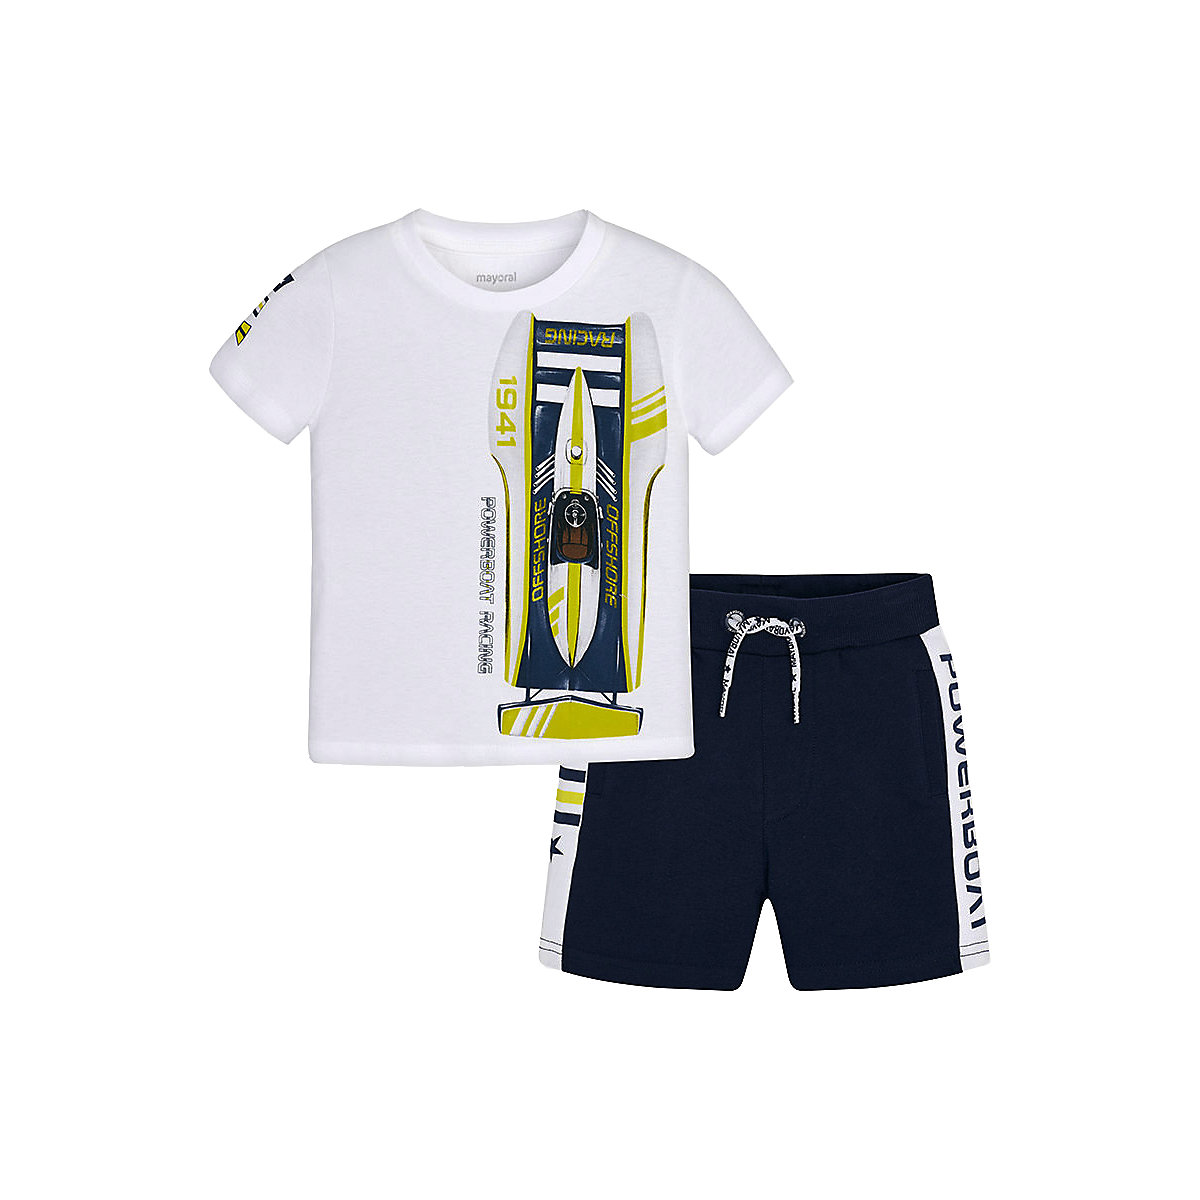 Baby's Sets MAYORAL 10690532 set of clothes for kids T-shirt legs shirt shorts girls and boys hot summer sportswear jerseys shorts skeleton pattern cycling sets for outdoor sport